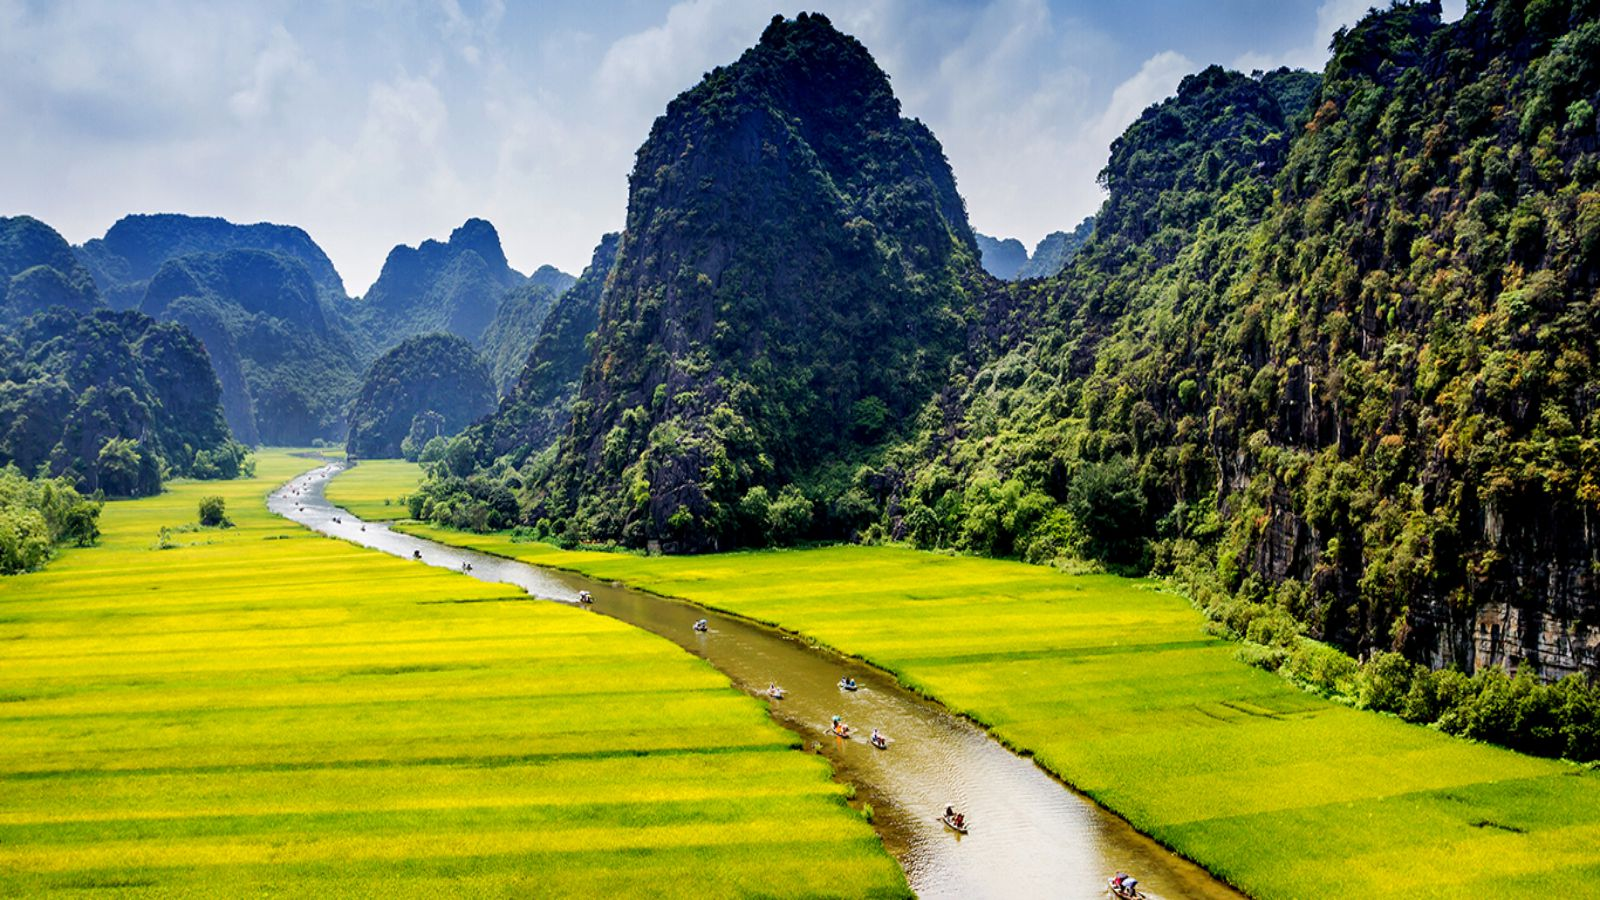 Brilliant colors of yellow rice fields, green forests, and white soft cloud of Trang An make this place surreal and spectacular